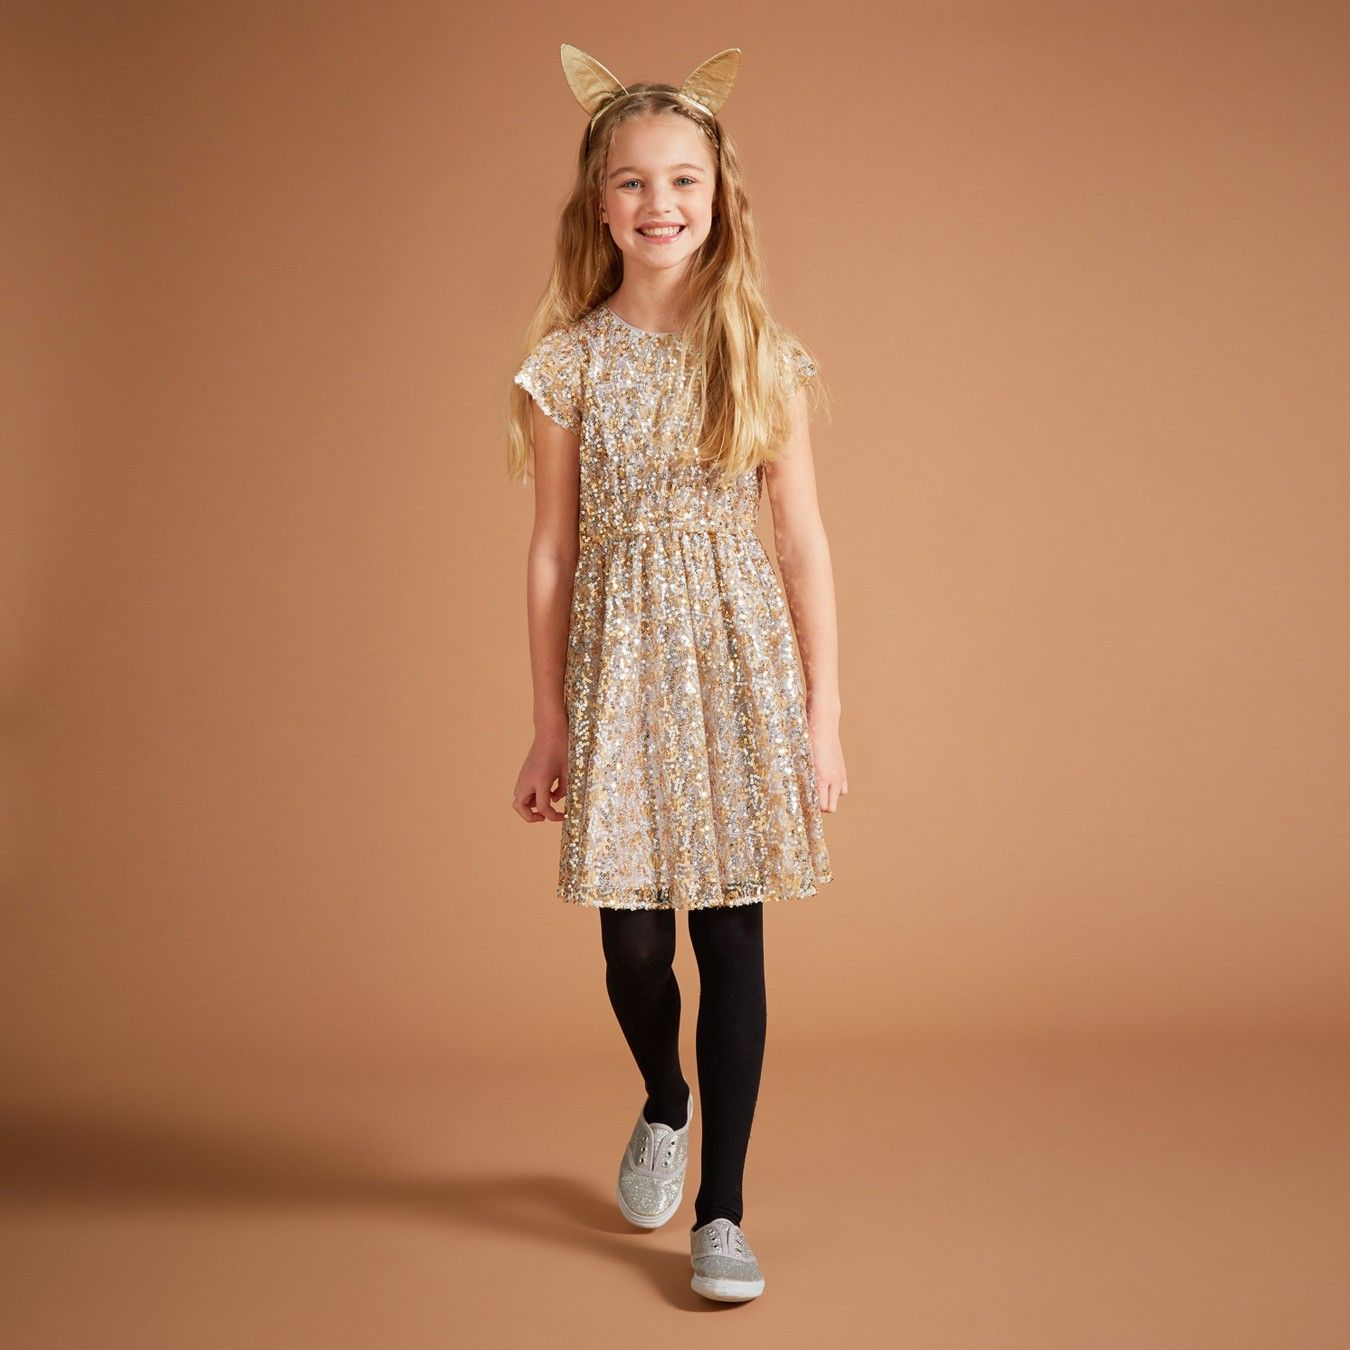 @ilovegorgeous Wonder Dress - Gold/Silver -  Was £95 Now £76 #blackfriday #bestofblackfriday #girlswear #ilovegorgeous #dress Offer ends 30th November 2015